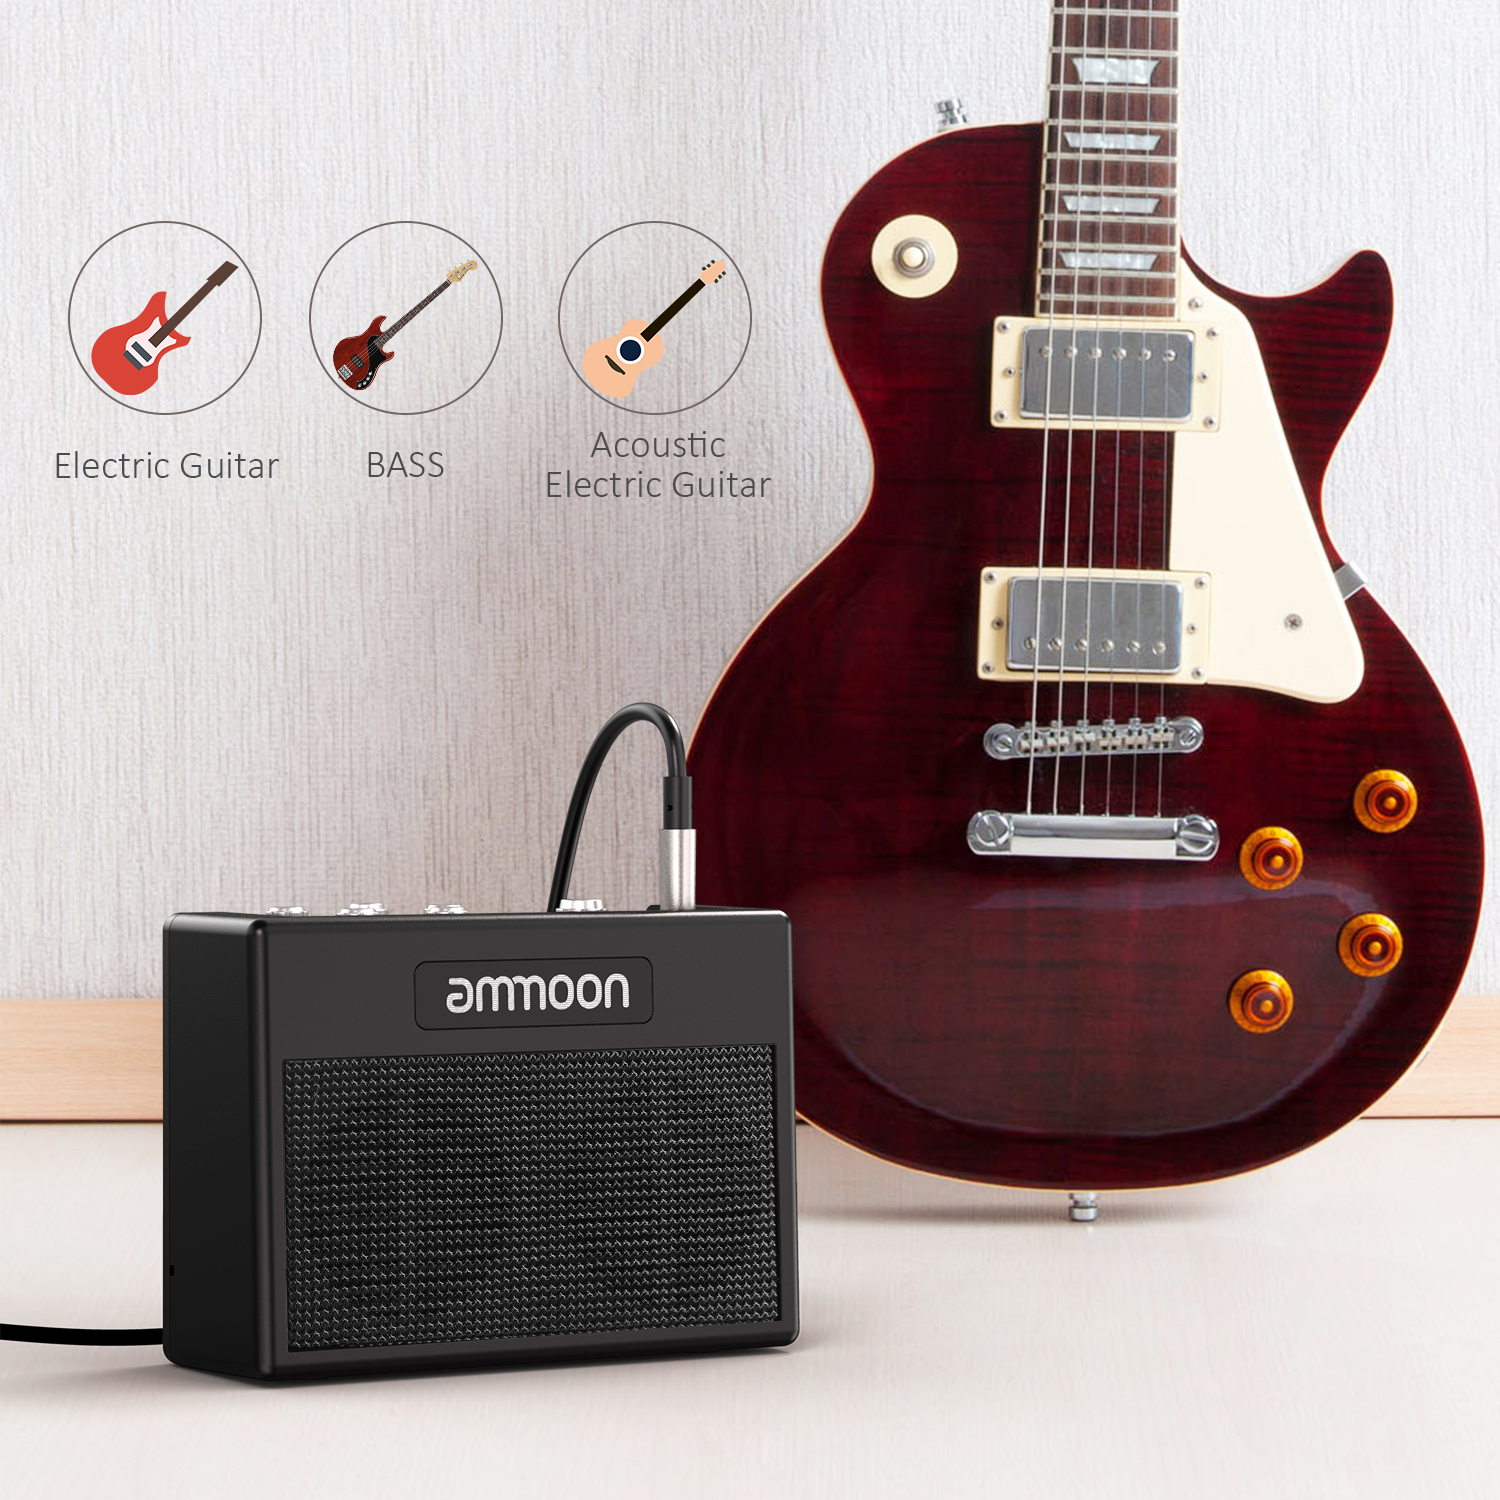 ammoon POCKAMP Guitar Amplifier Built in Multi effects 80 Drum Rhythms Support Tuner Tap Tempo Function